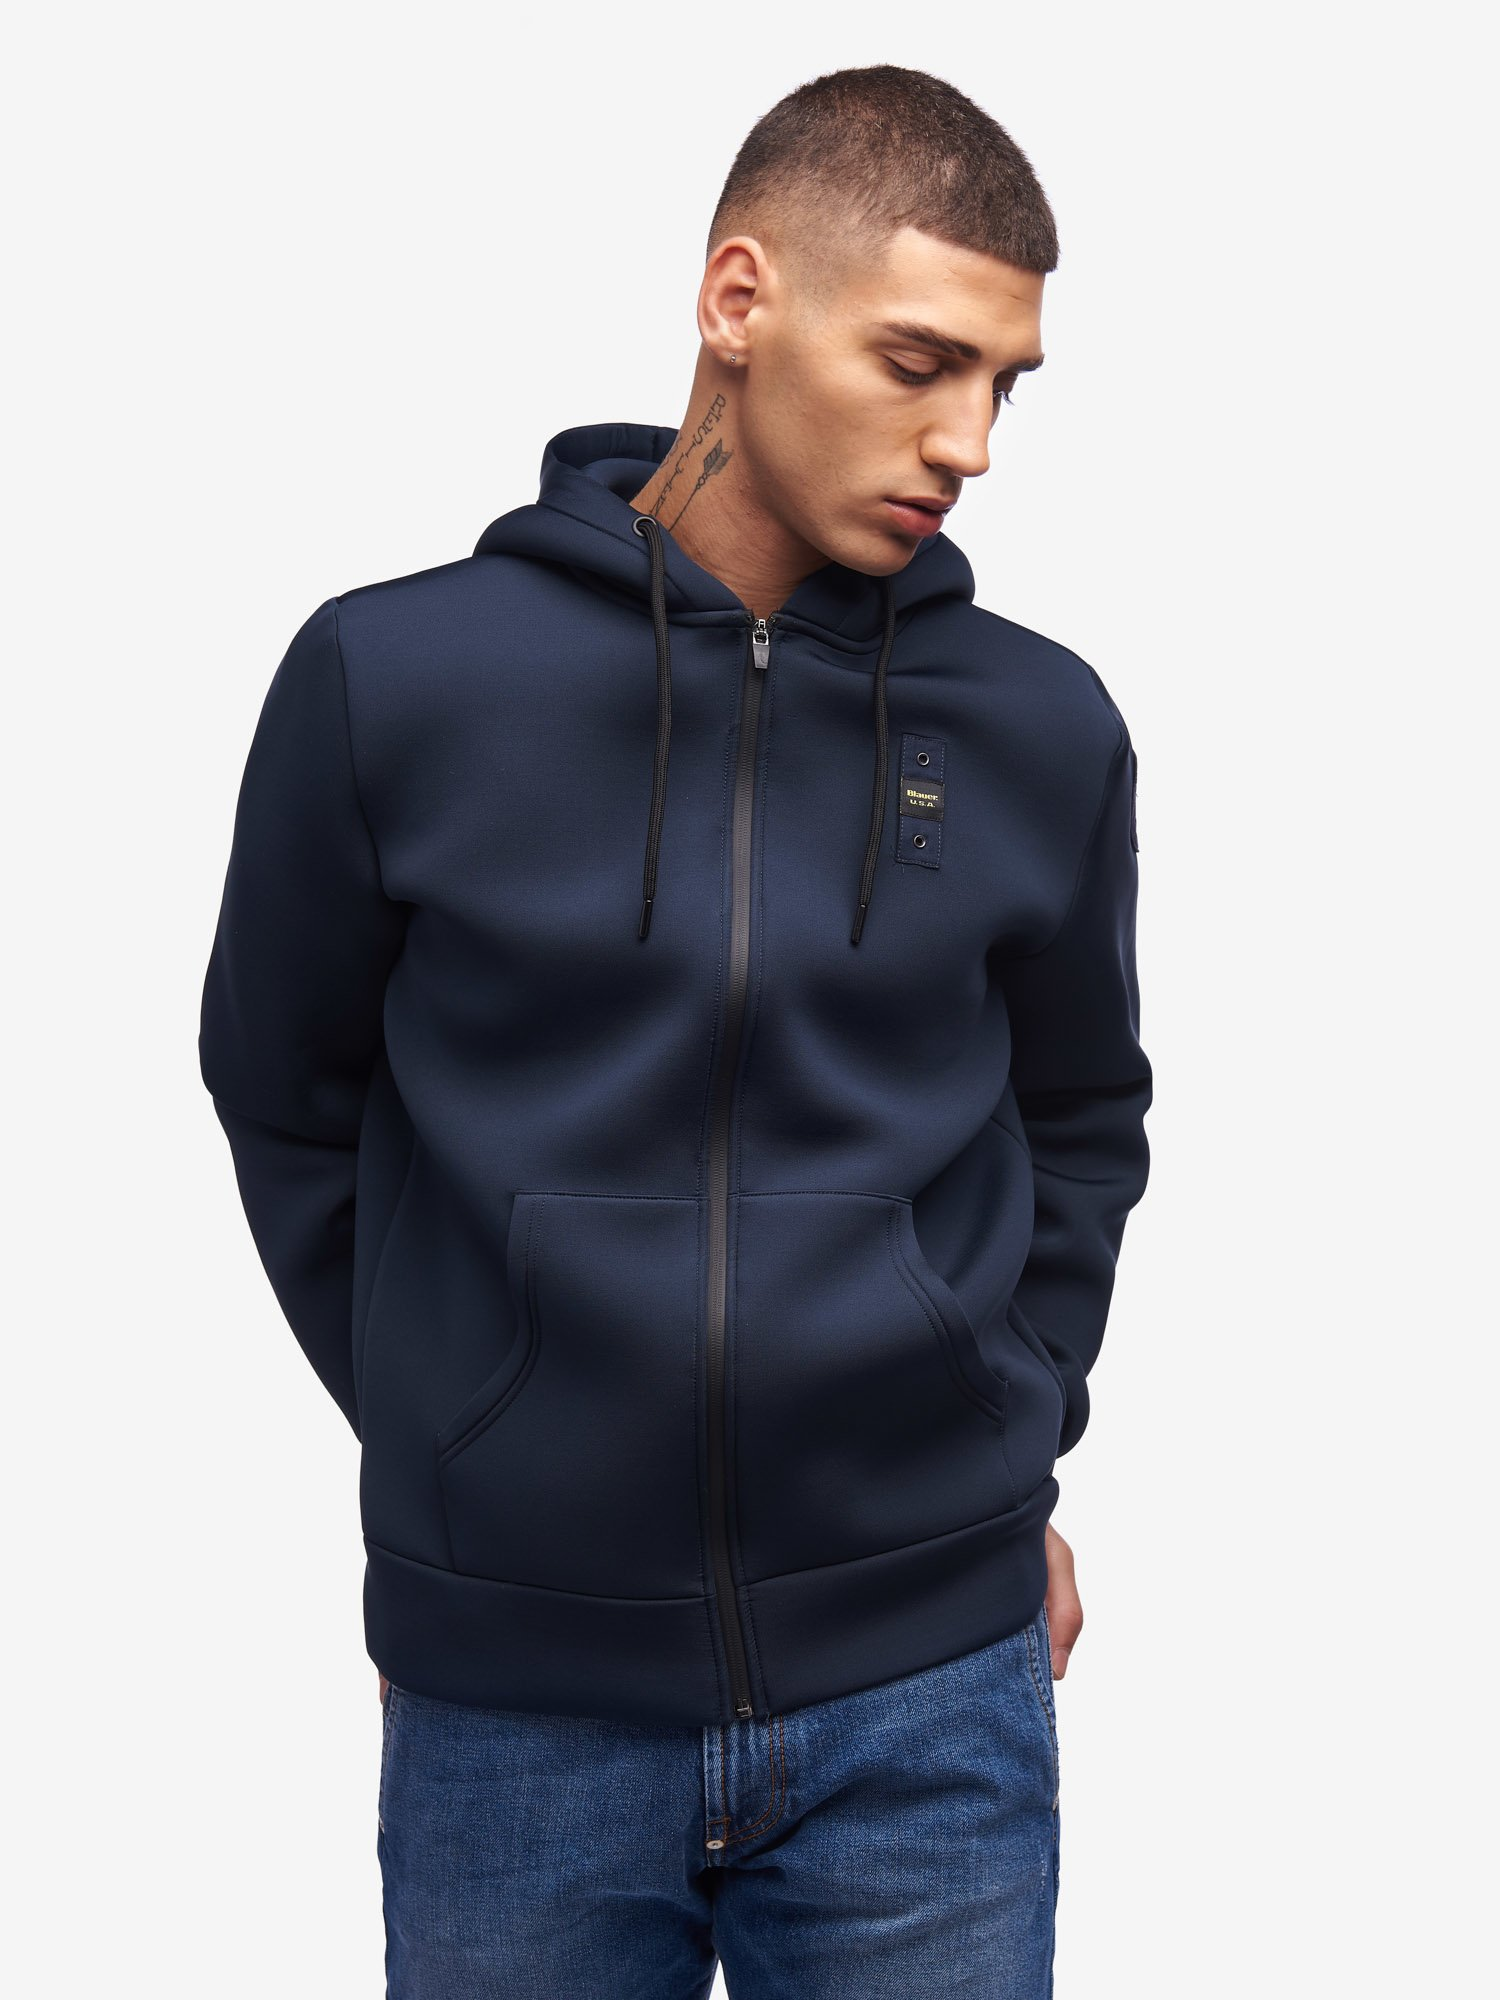 SOLID COLOUR NEOPRENE HOODED SWEATSHIRT - Blauer